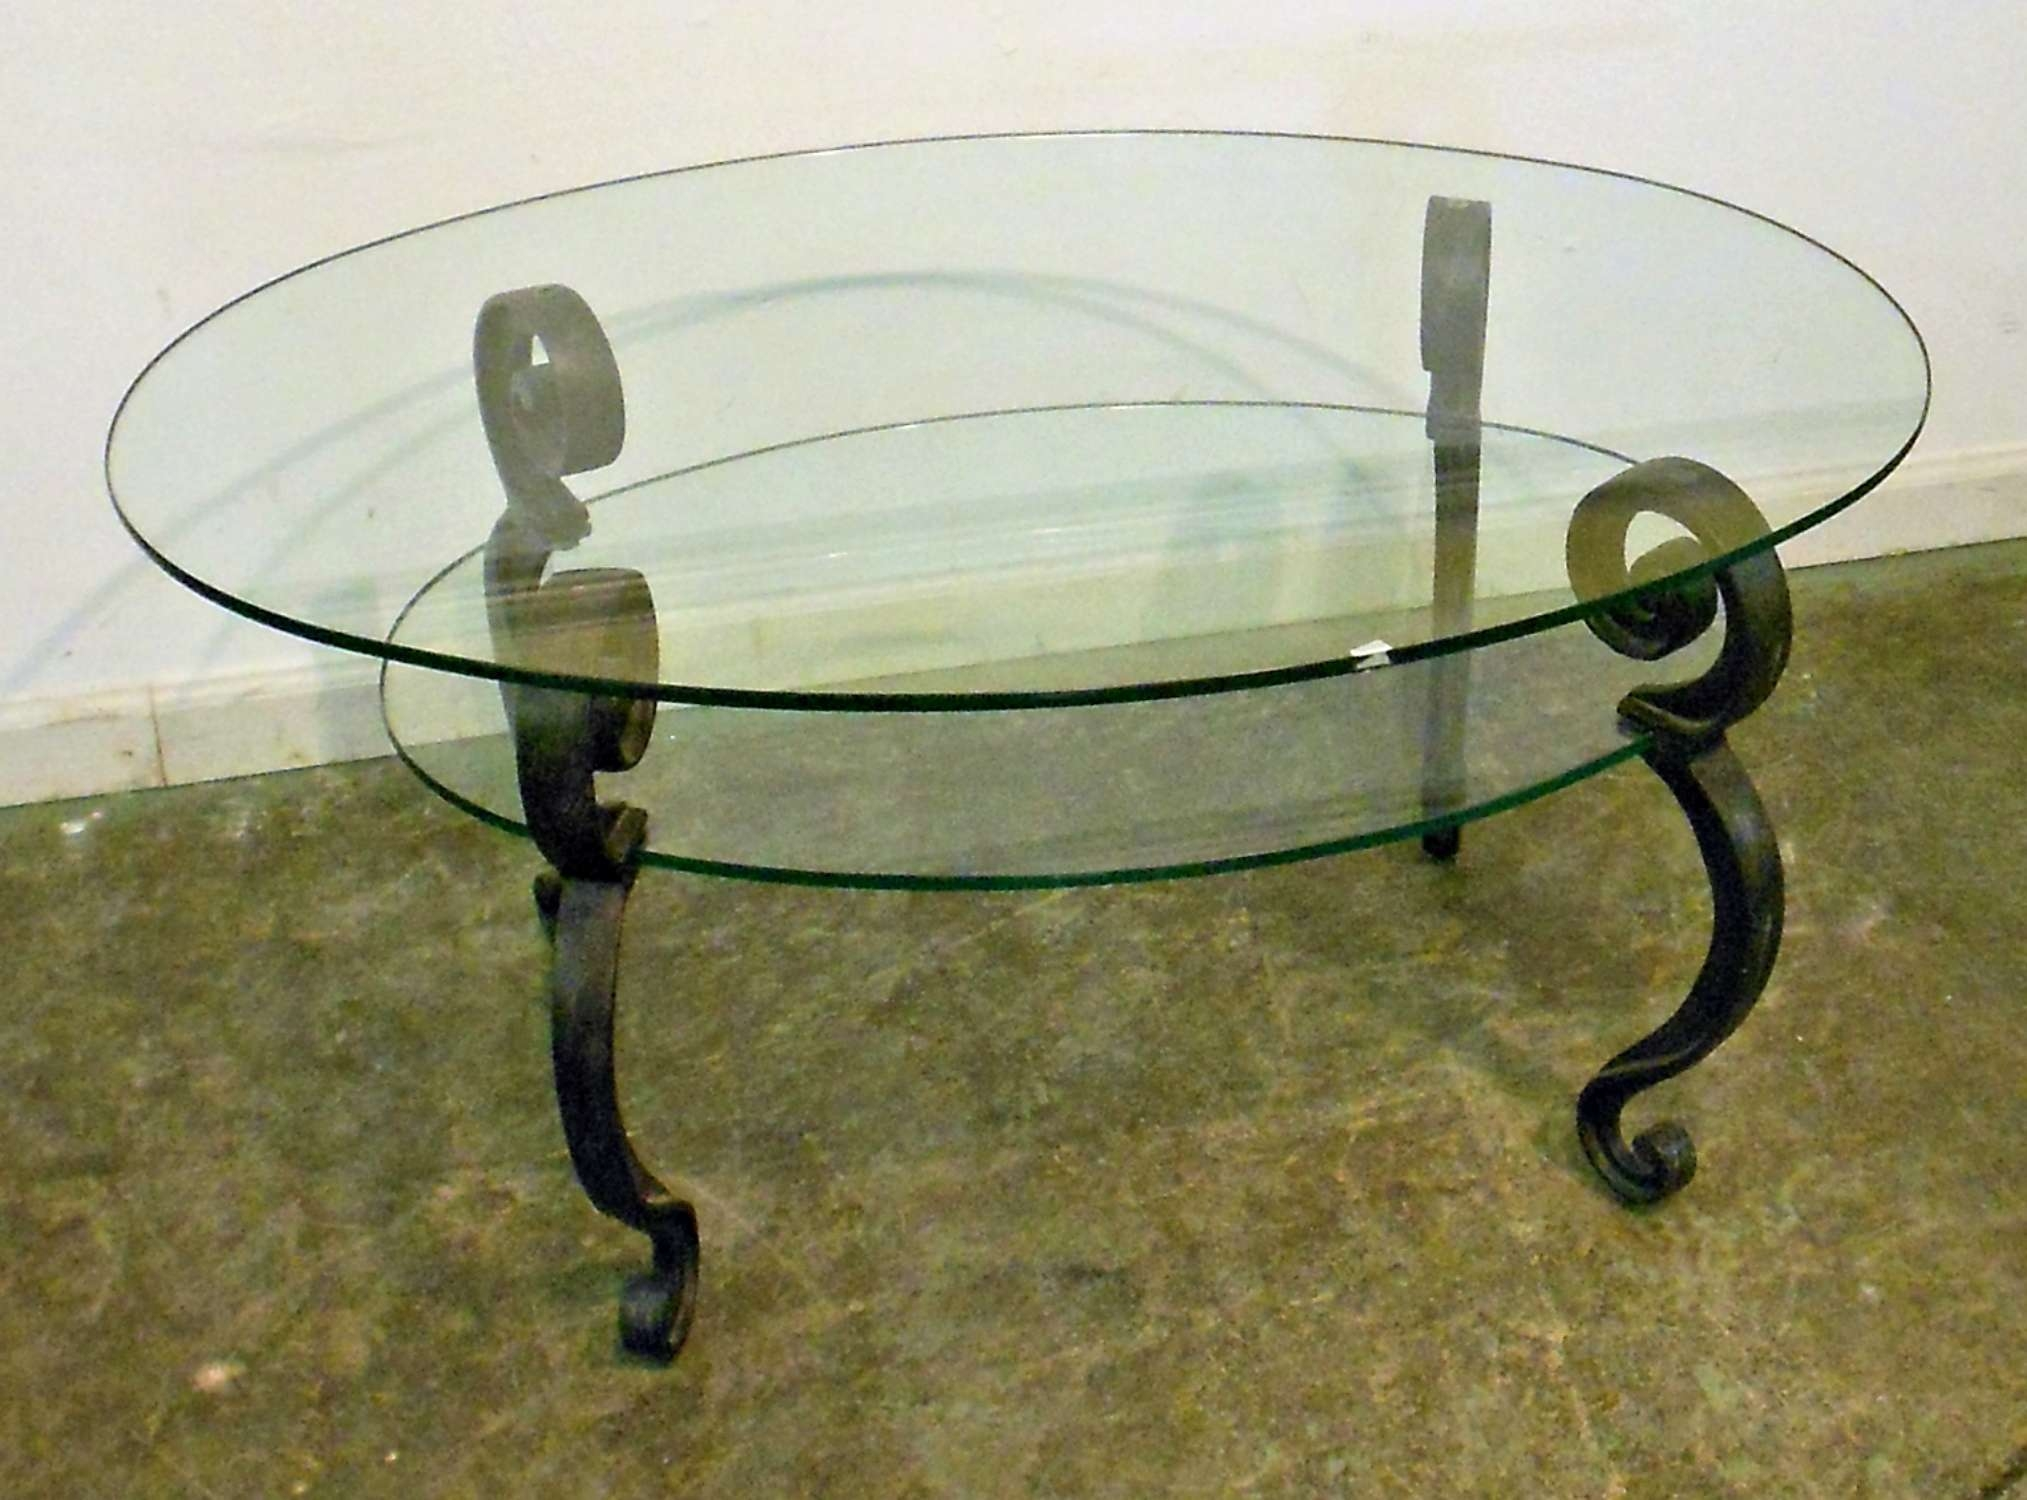 2018 Retro Glass Top Coffee Tables Inside Vintage Glass Top Coffee Table With Black Metal Legs And Shelves (View 2 of 20)